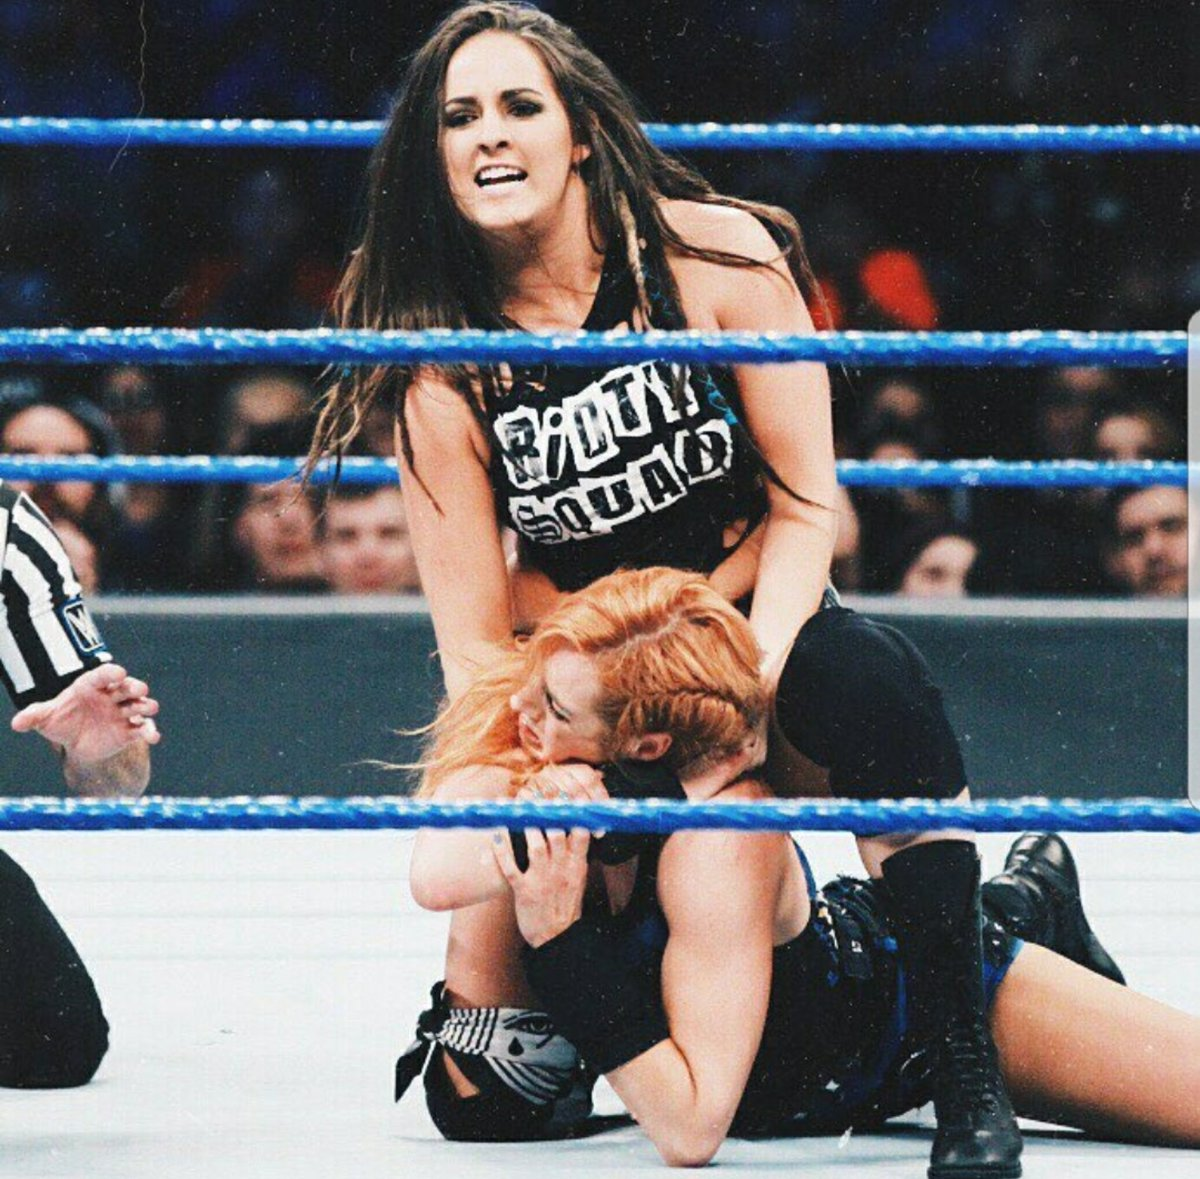 We're in the hurting business and right now on #SDLive, business is booming. #RiottSquad #hunter #borninthewoods #kentucky https://t.co/fAVgoiFjbJ